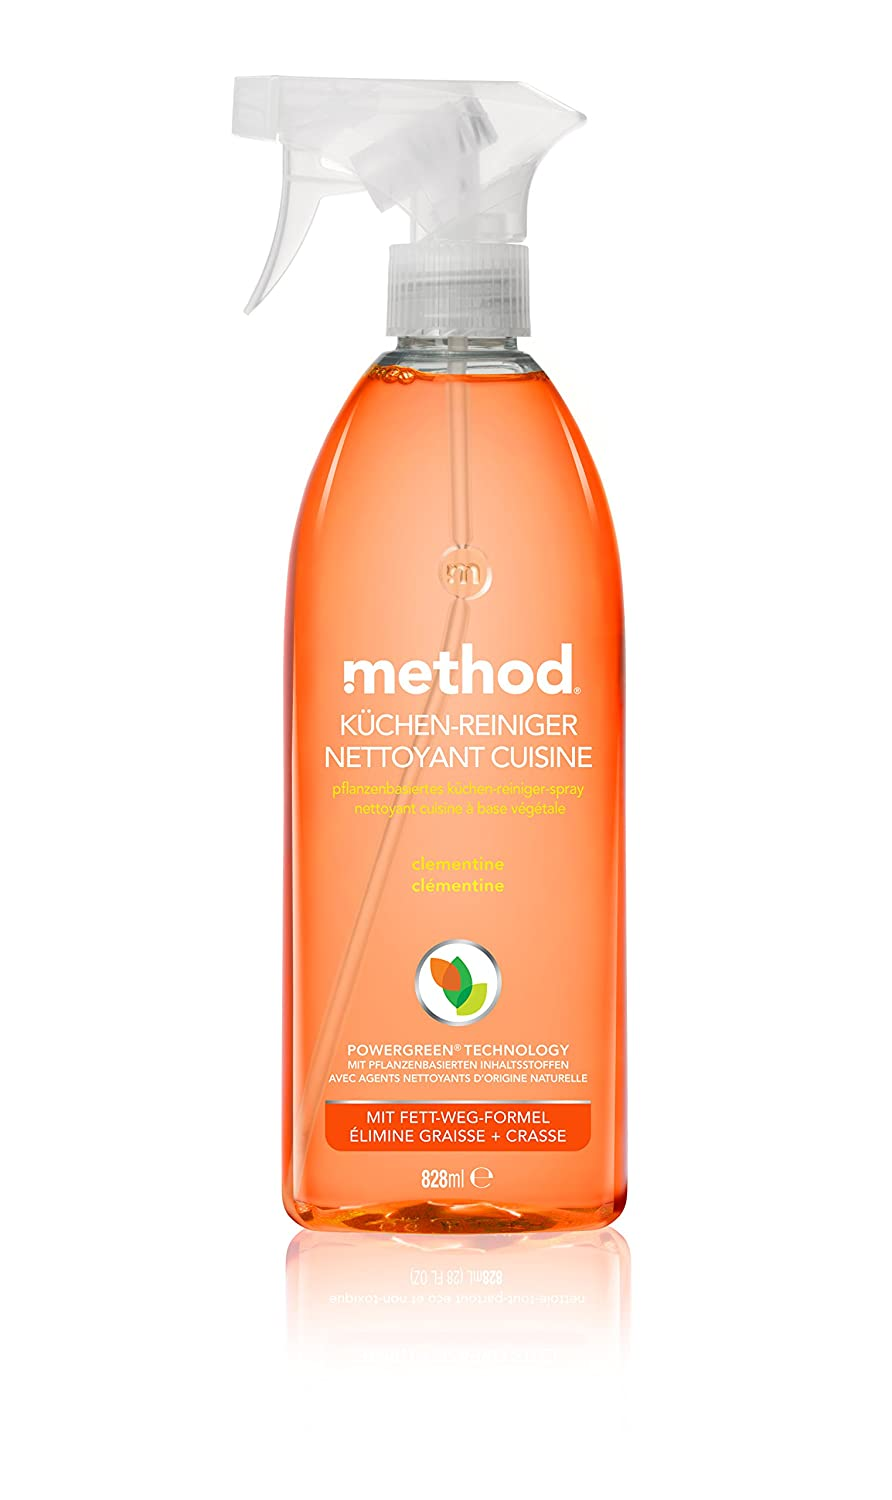 method Küchen-Reiniger Clementine, 4er Pack (4 x 828 ml): Amazon.de ...